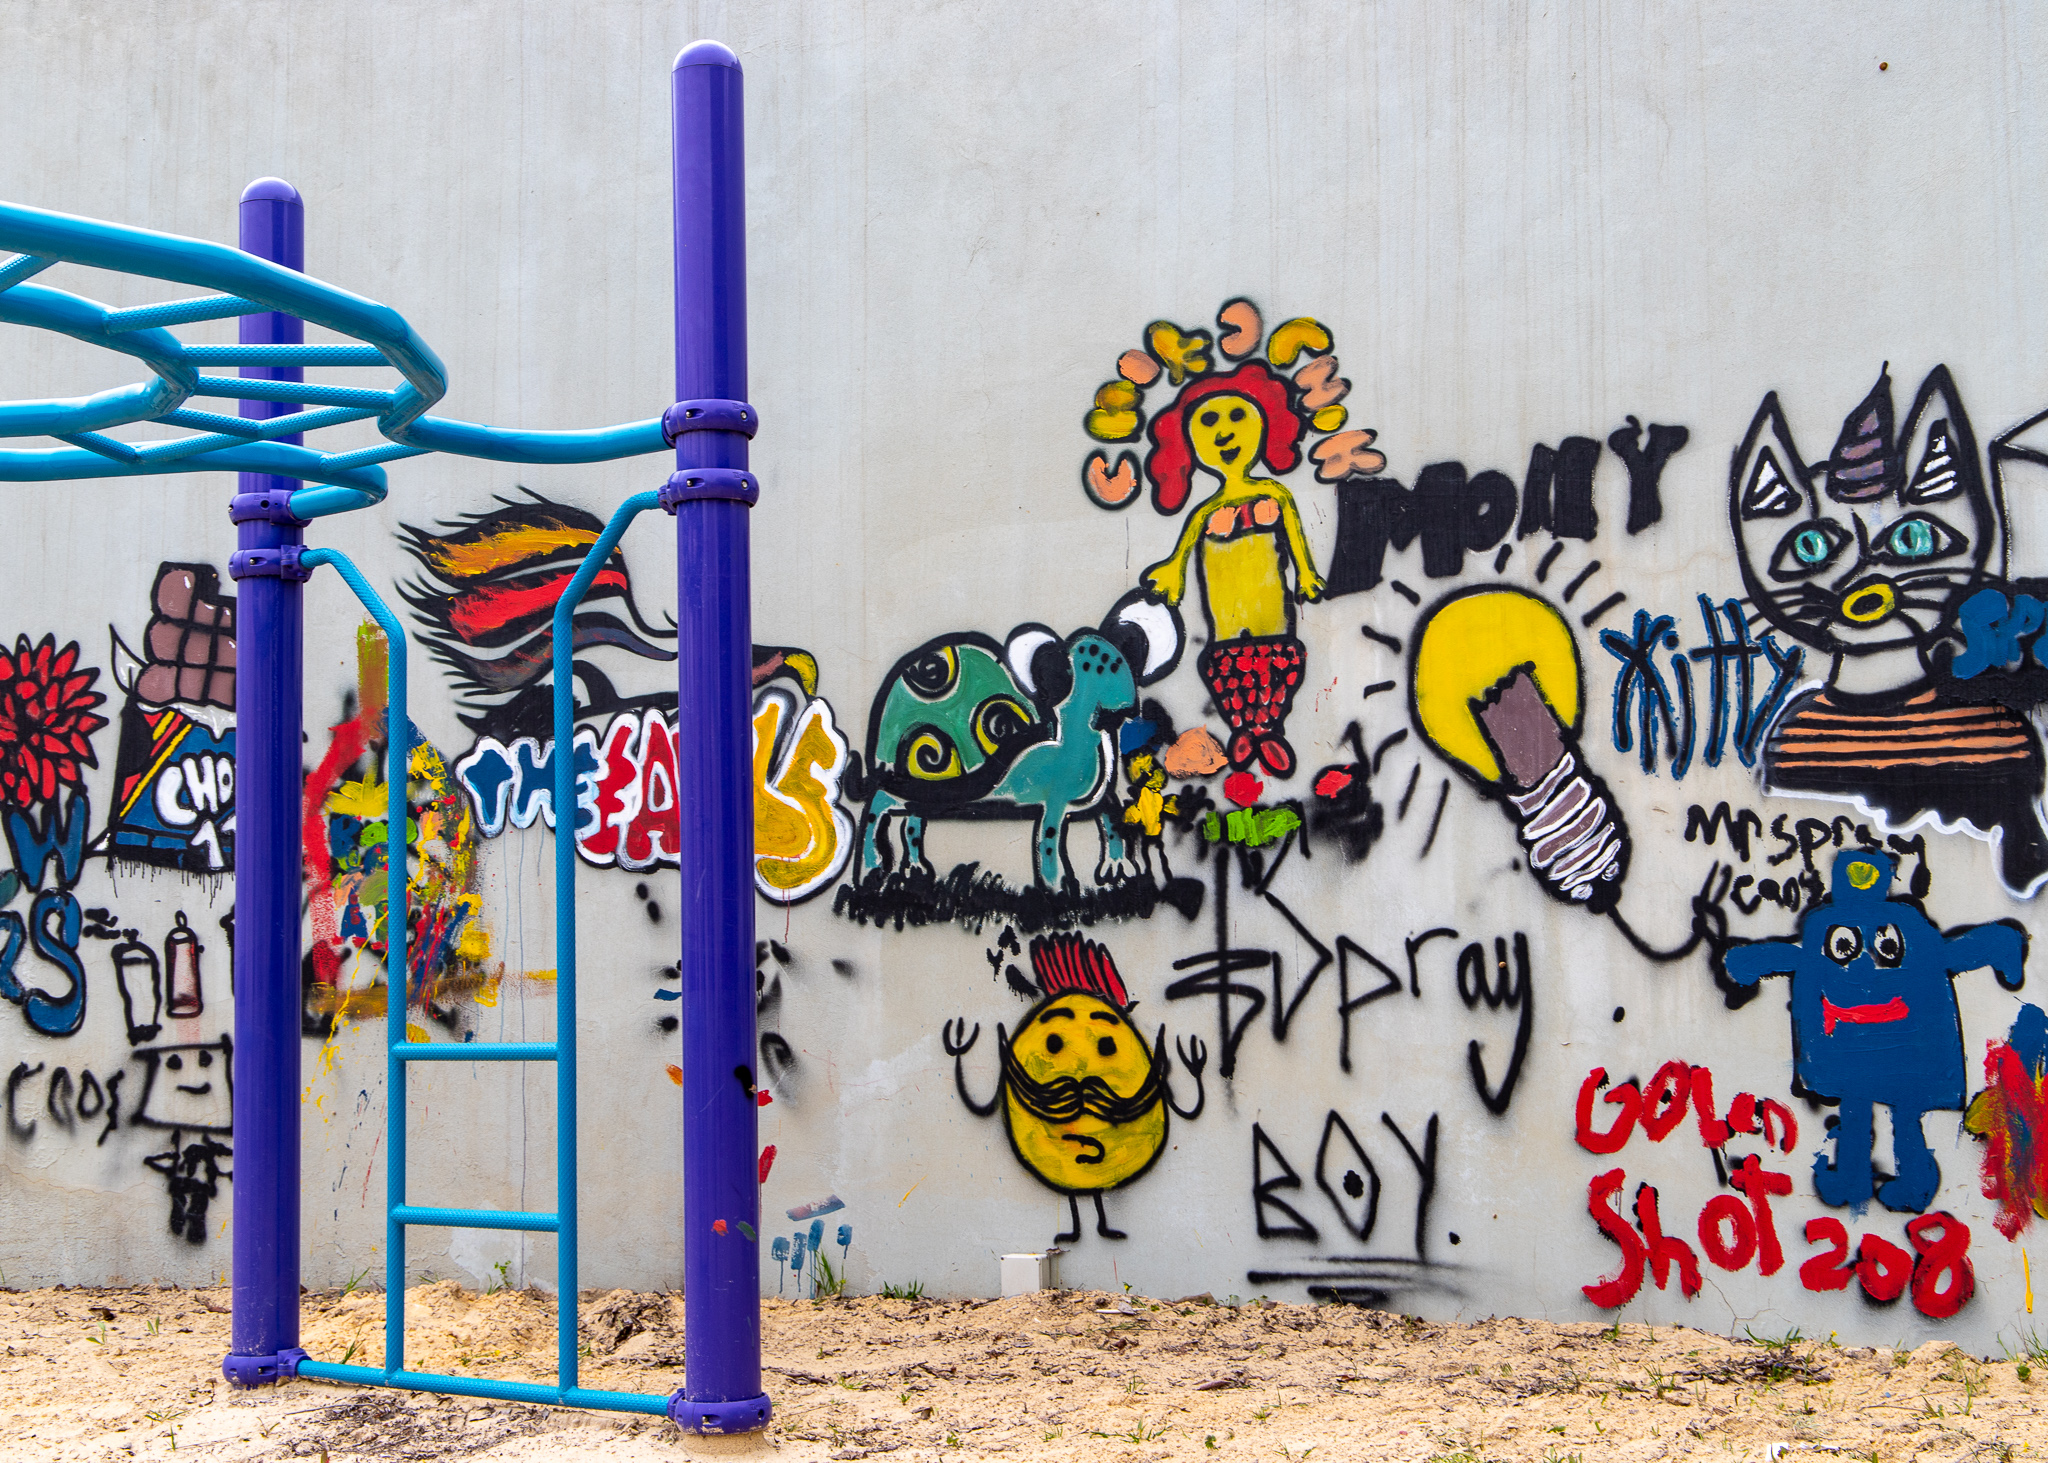 Apparently there's a burgeoning graffiti scene in Amman, which also extends to playgrounds